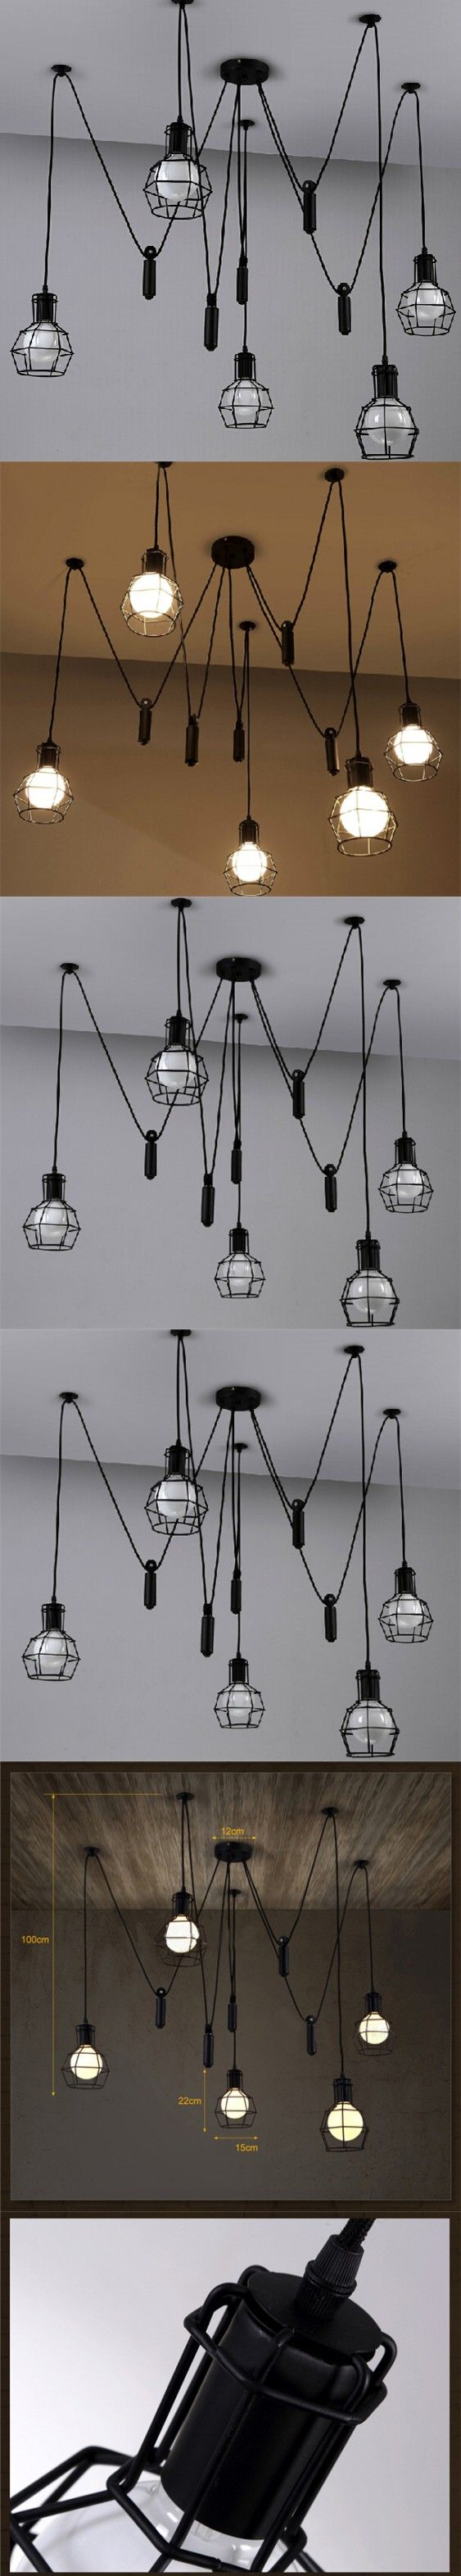 Loft Vintage Industrial Pendant Lights Iron Birdcage Hanging Fixture Lighting Home Decor Suspension Spider Lamp Living Room $264